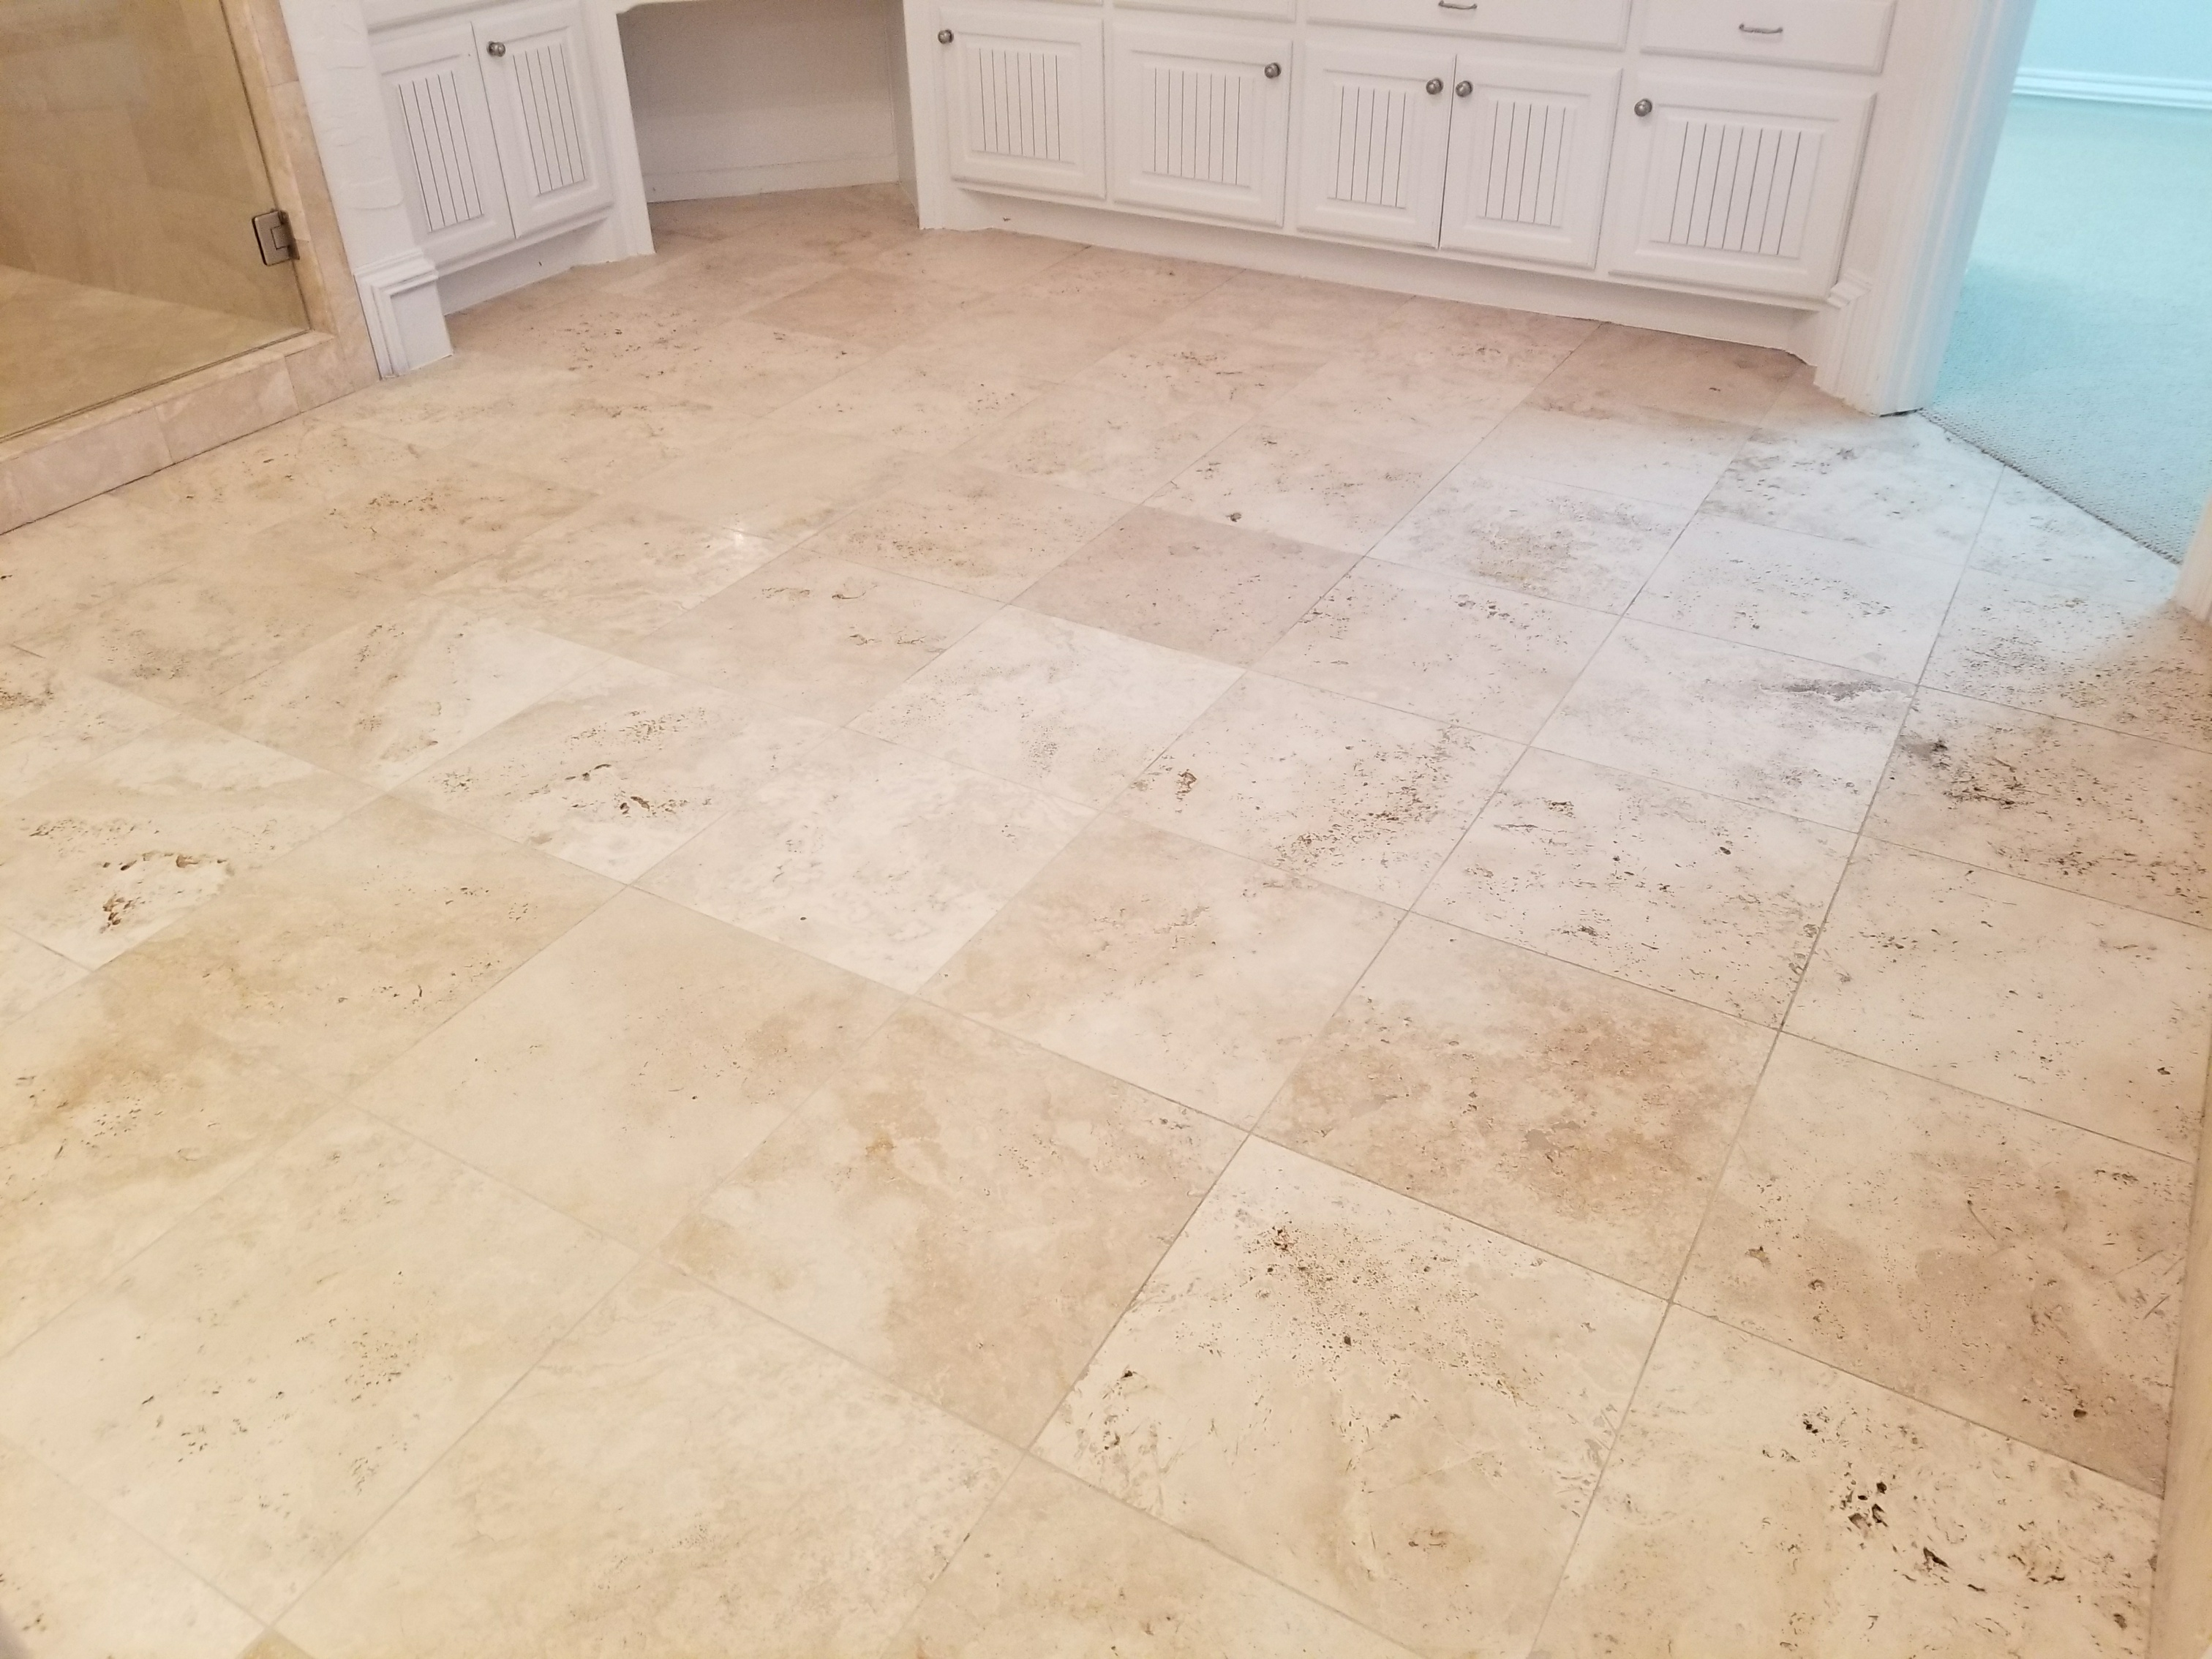 Travertine Tile Floor Cleaning U0026 Sealing Frisco, ...